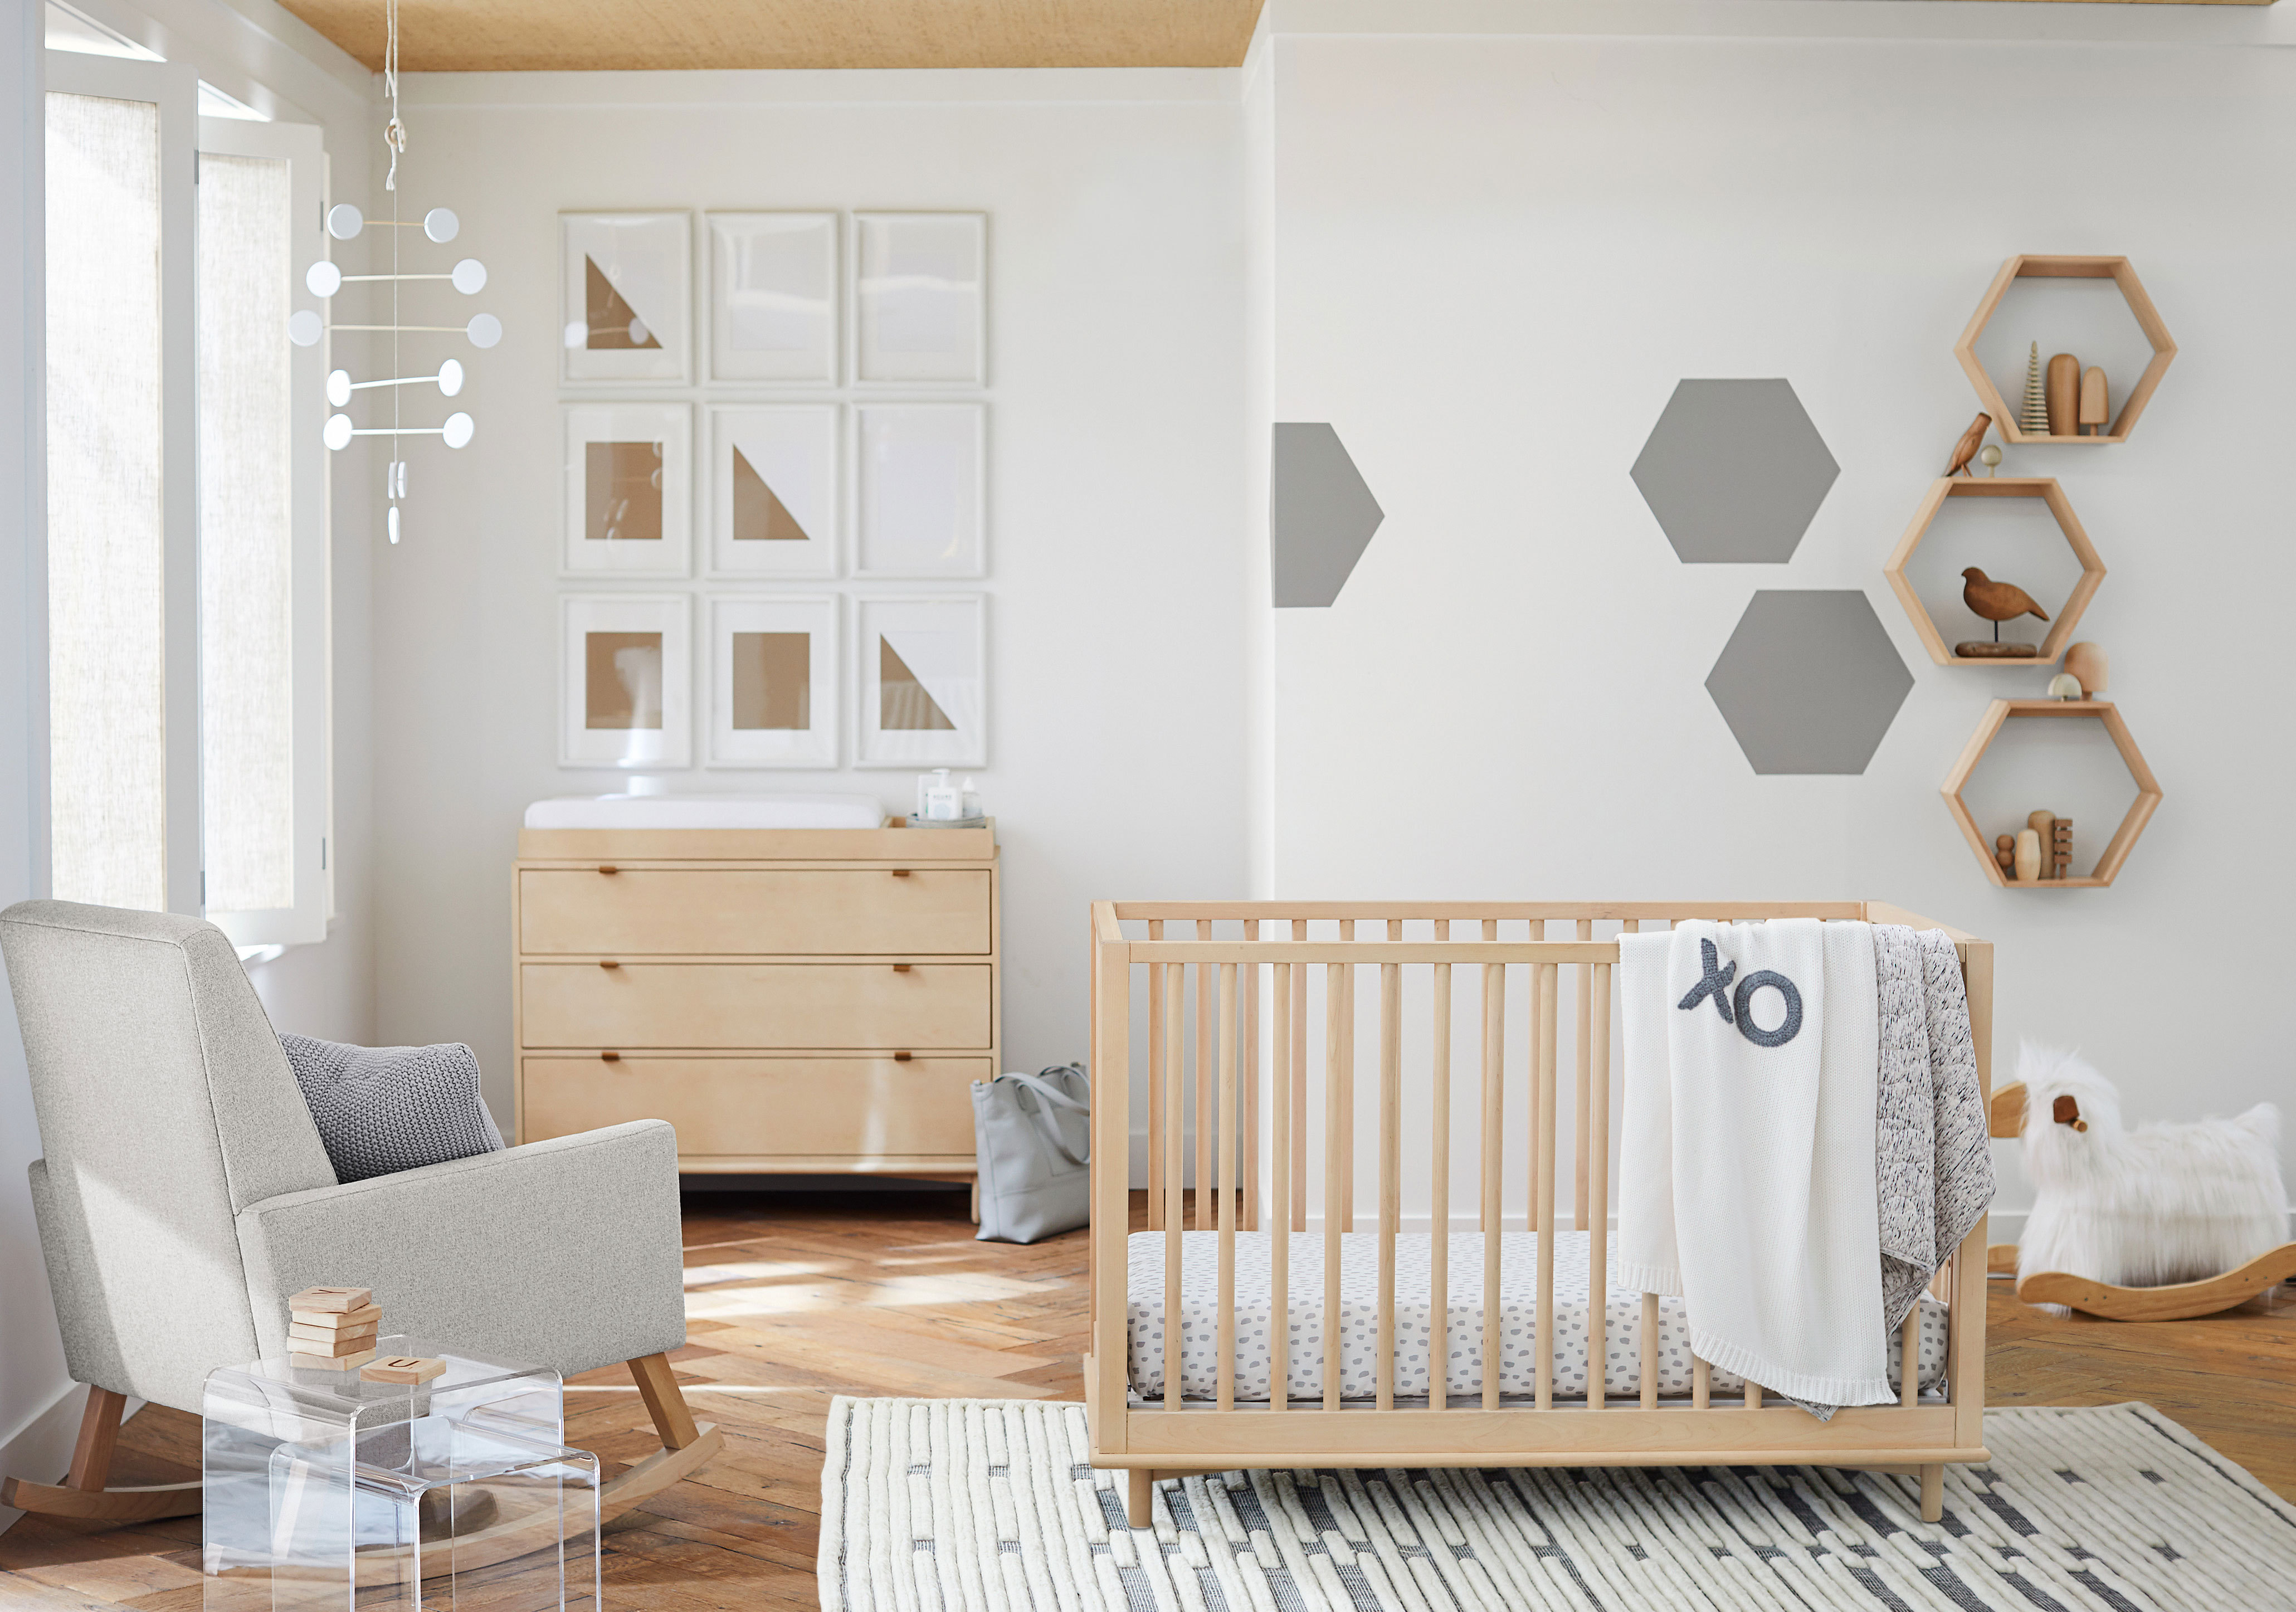 Pottery Barn Kids Debuts New High Style Nursery Collection Modern Baby Business Wire